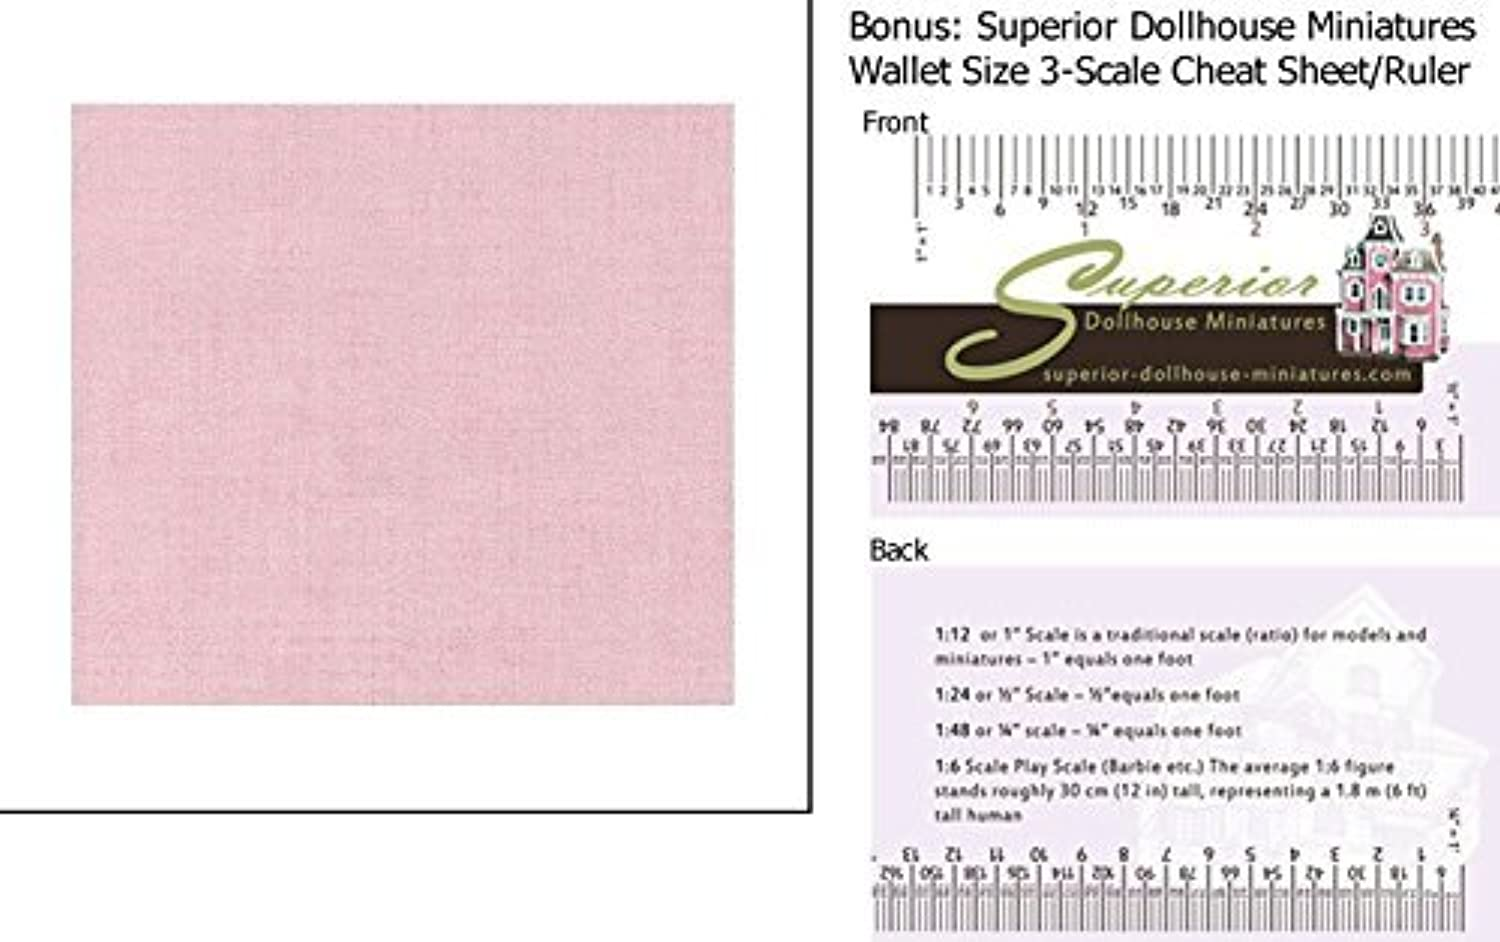 Dollhouse Wallpaper Light Pink Cloth w BONUS Wallet 3Scale Ruler by New Creations